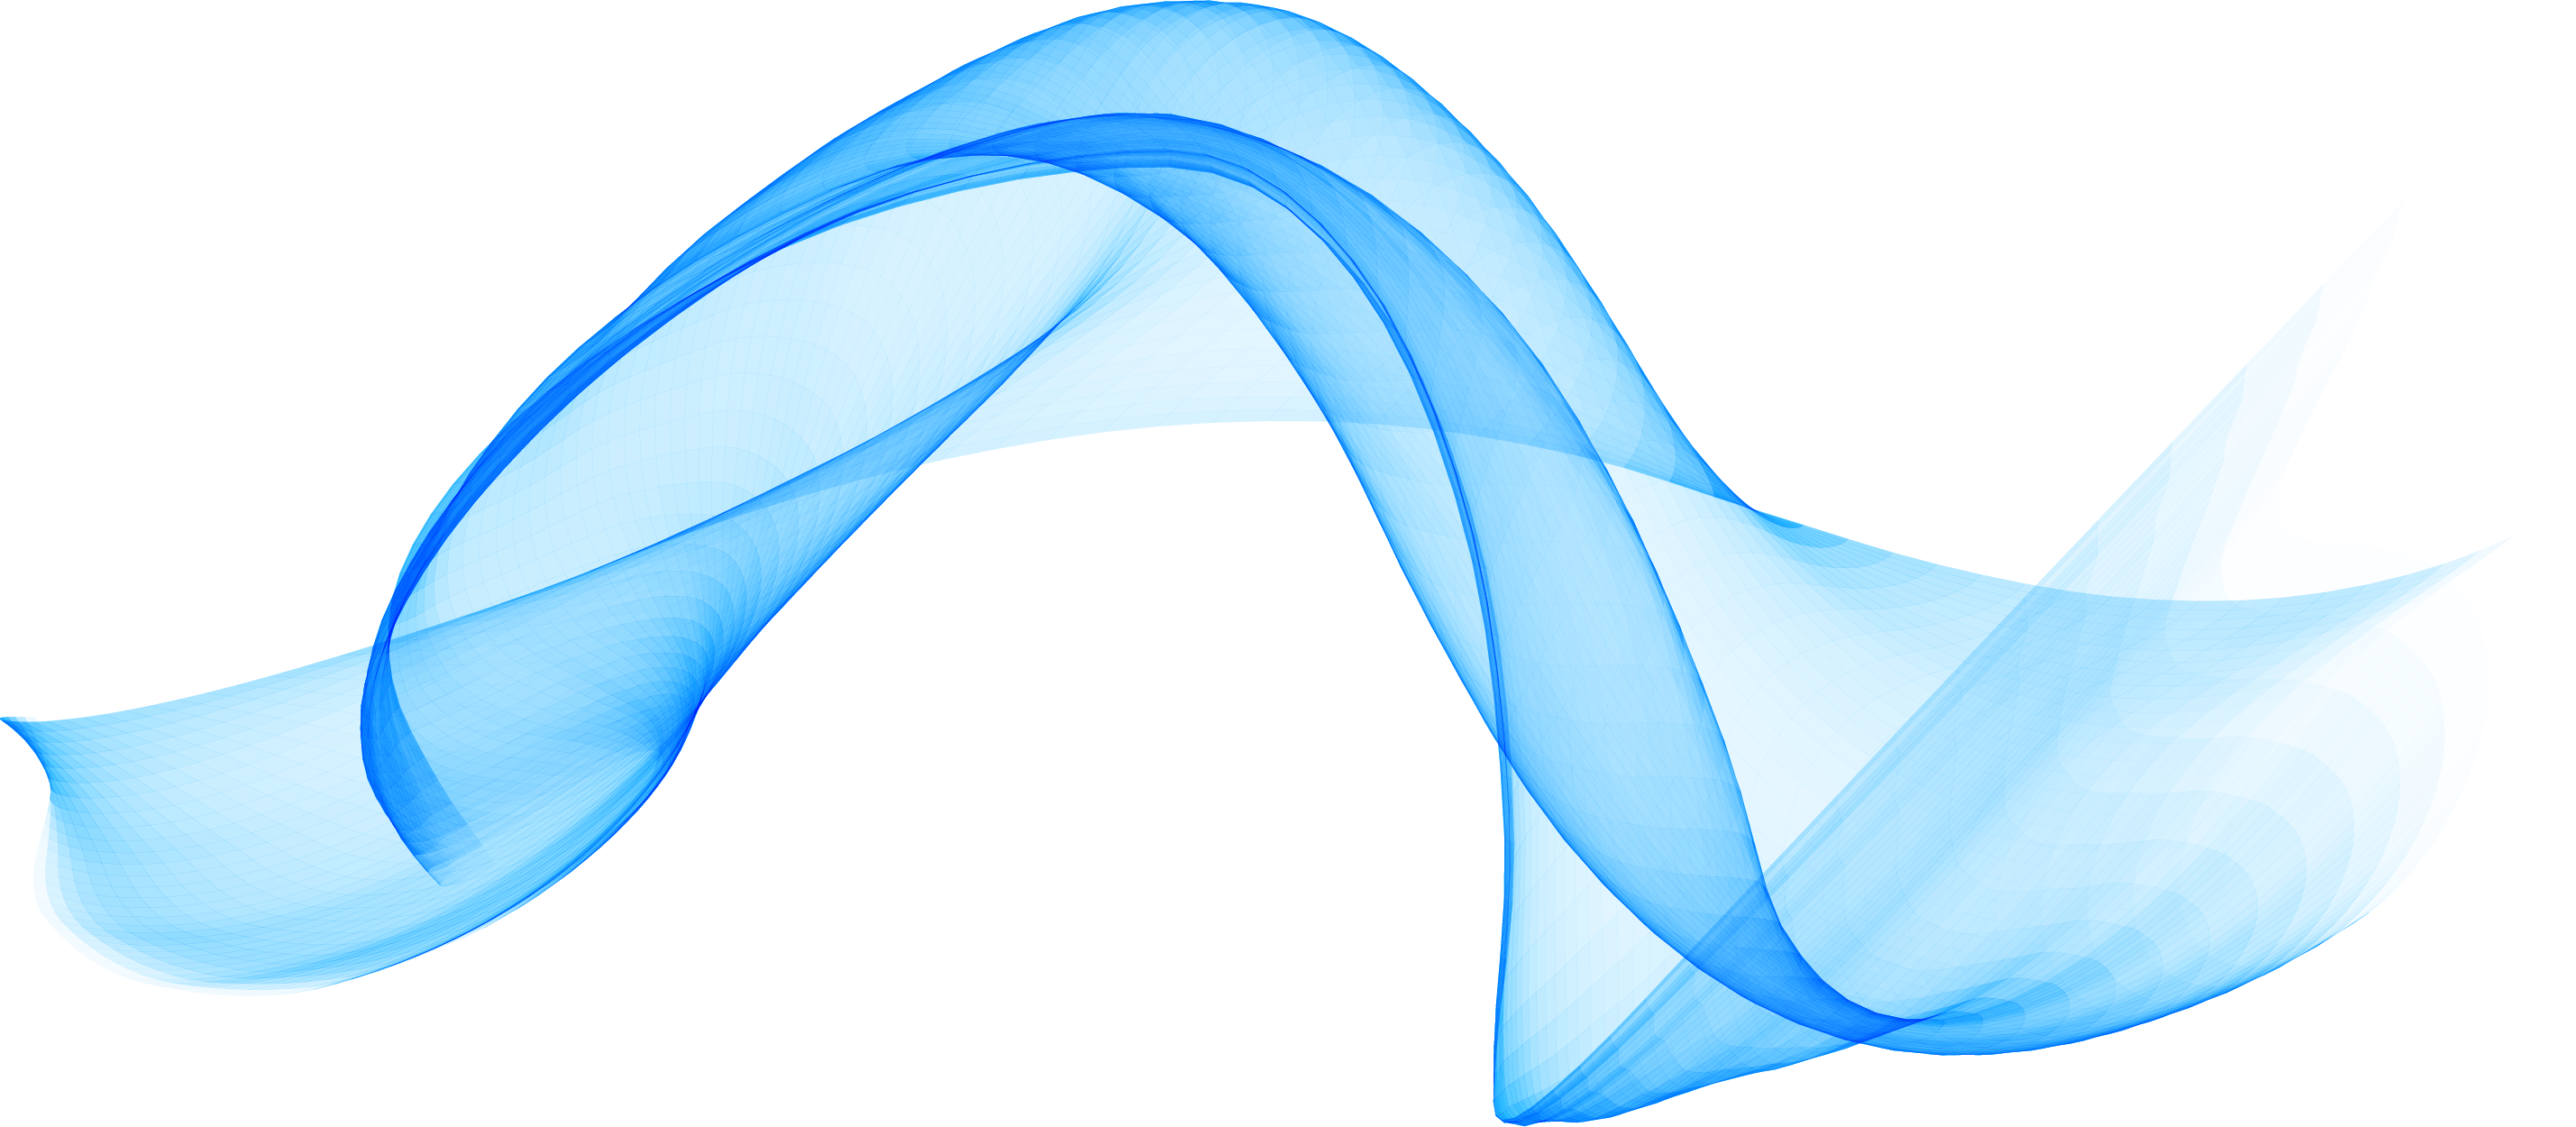 Clipart wave file. Blue computer technology ripples